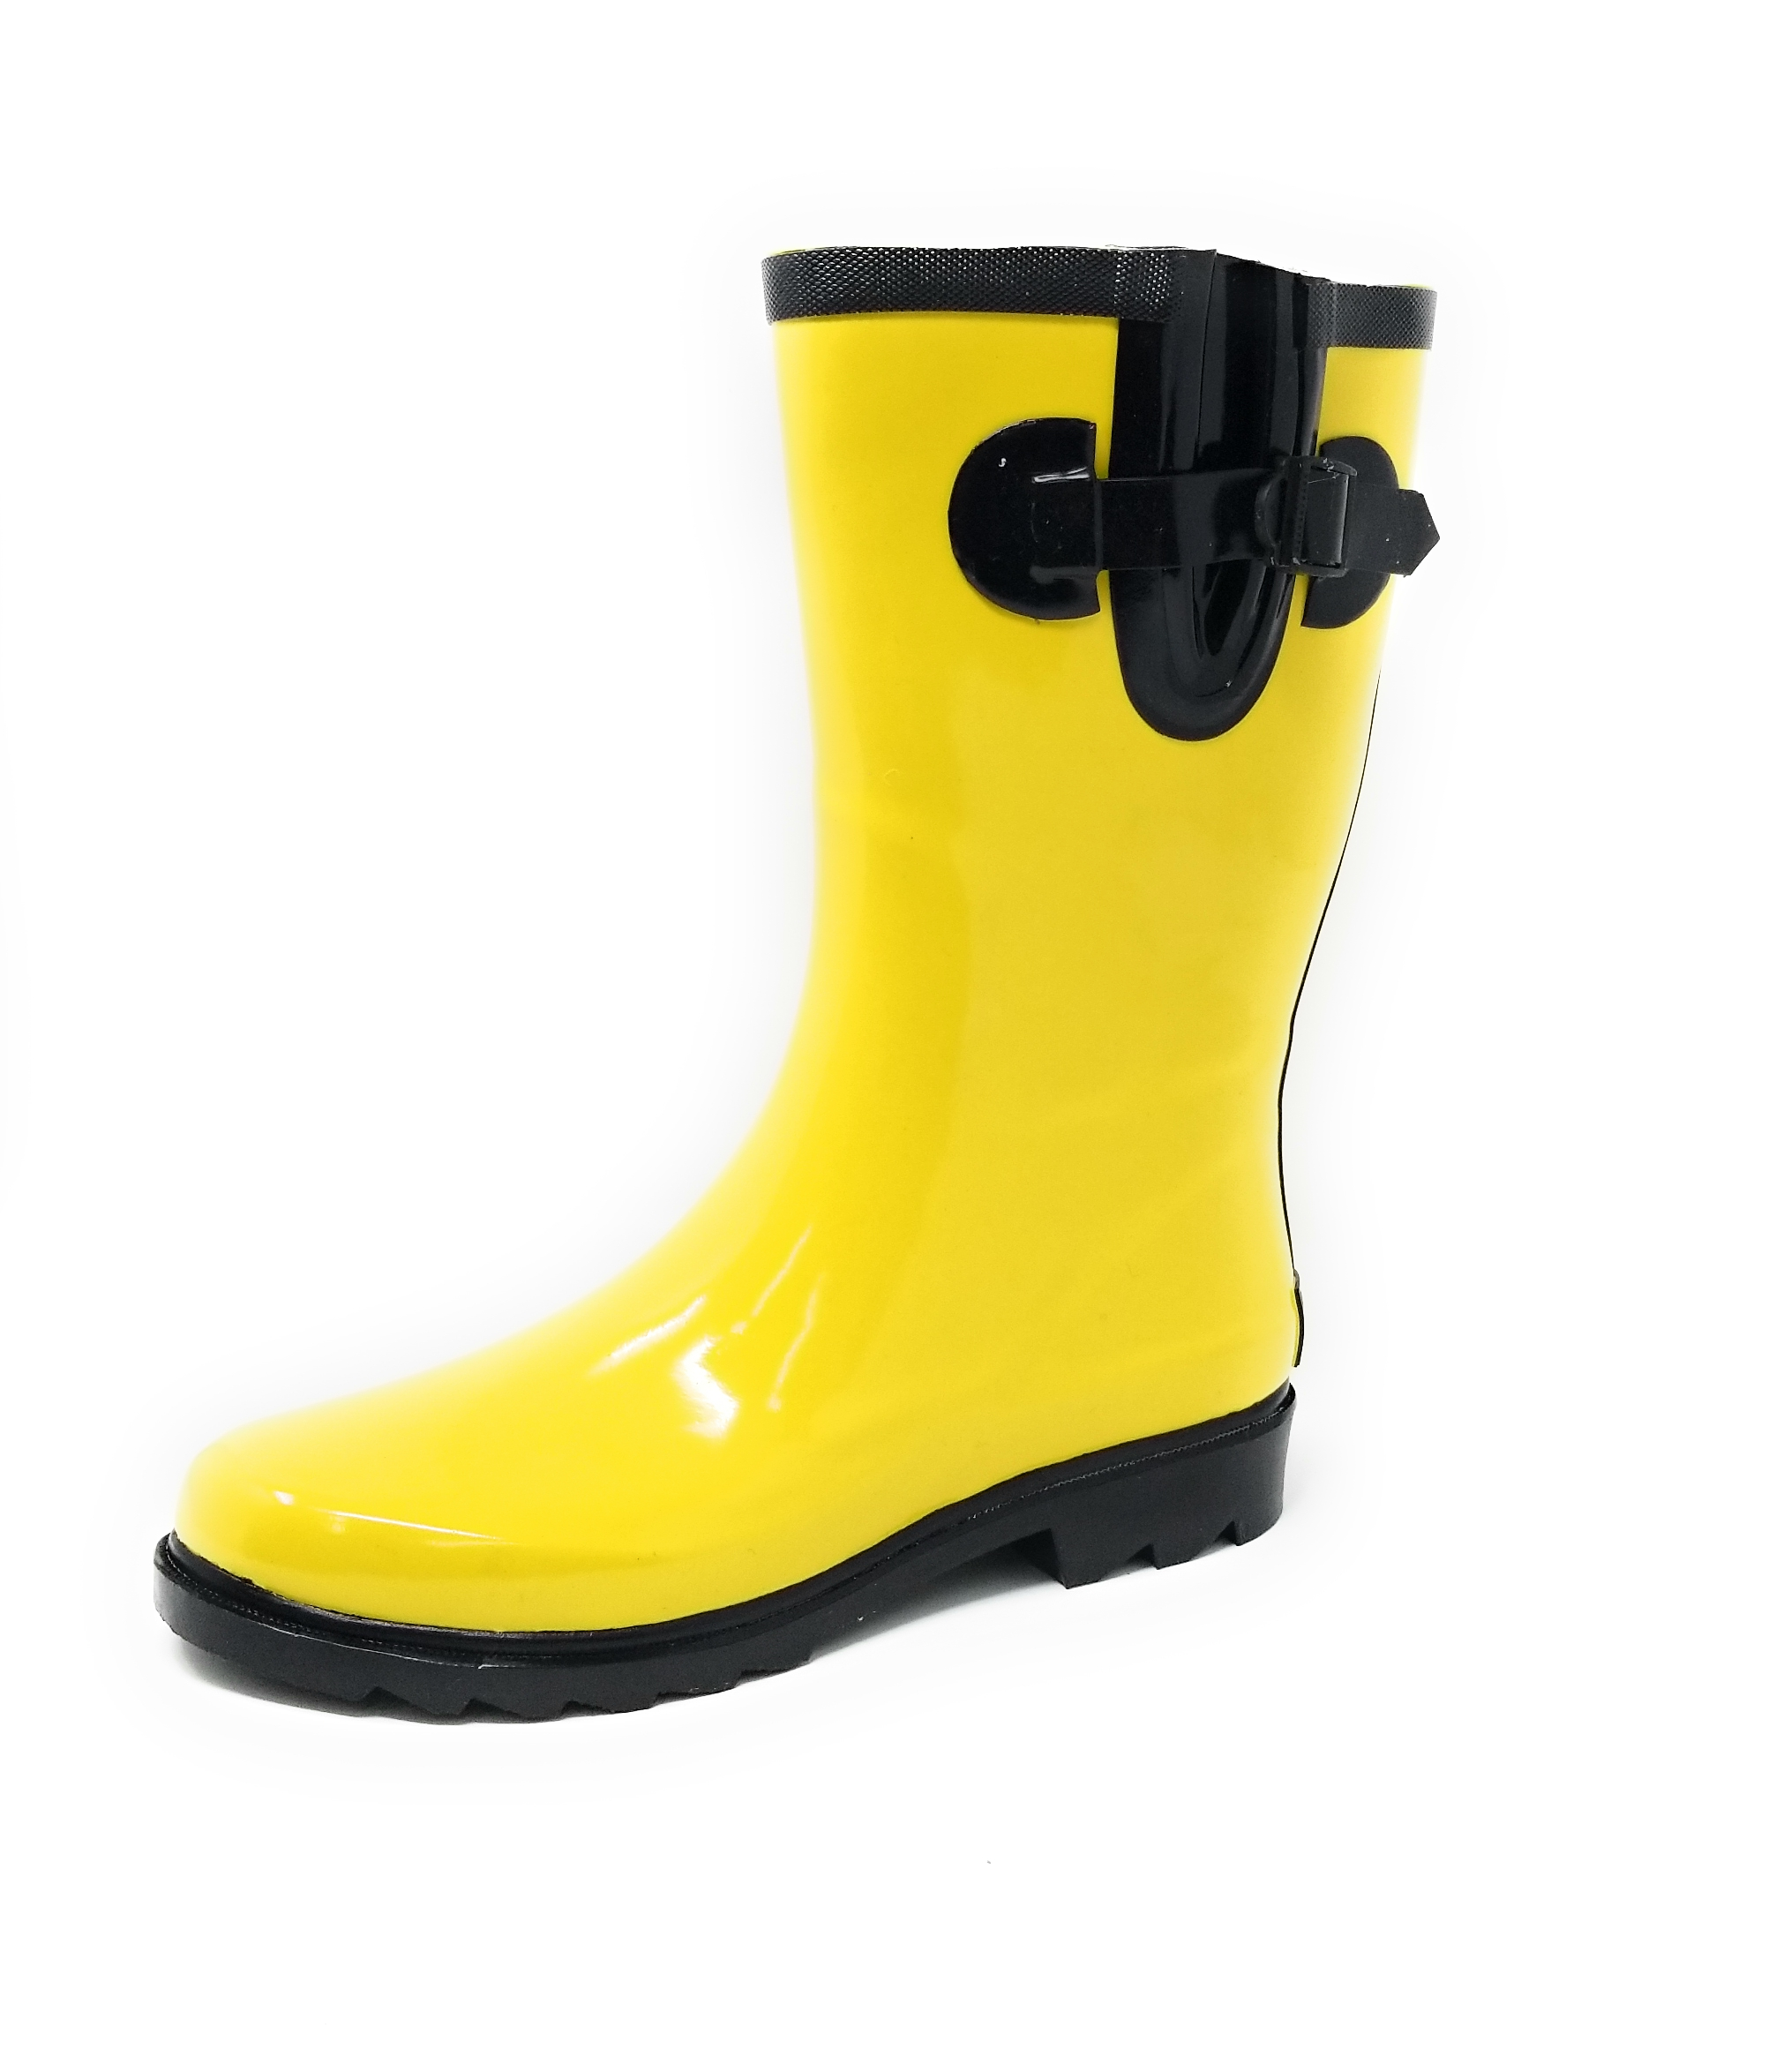 "Women Classic Mid-Calf 11"" Two-Tone Yellow & Black Wellies Waterproof Rubber Rain Boots Wellies Black 90918e"